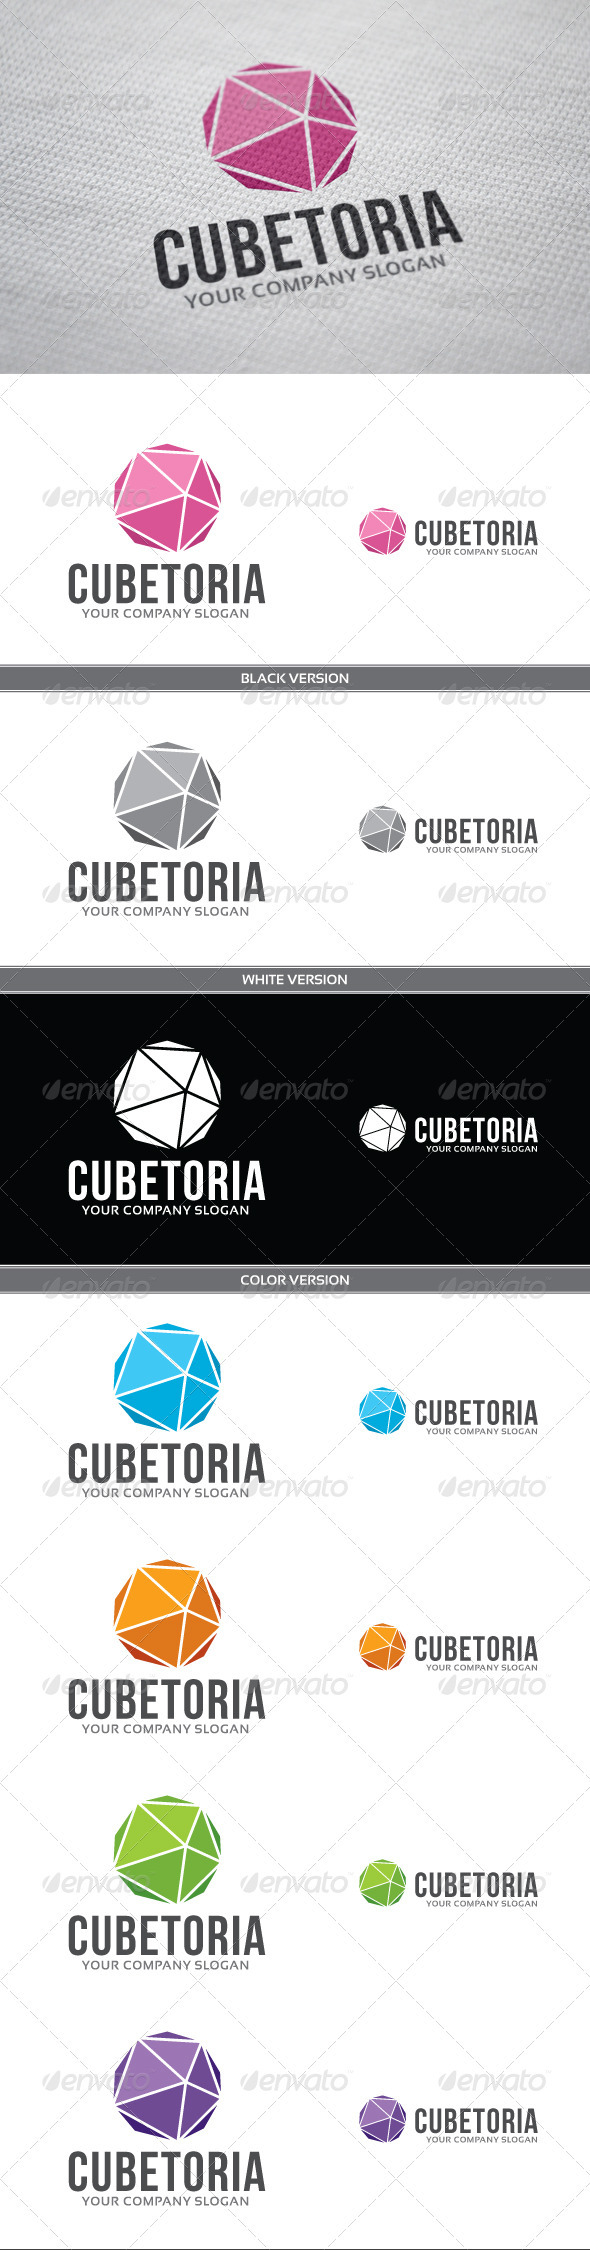 Cubetoria Logo - Vector Abstract